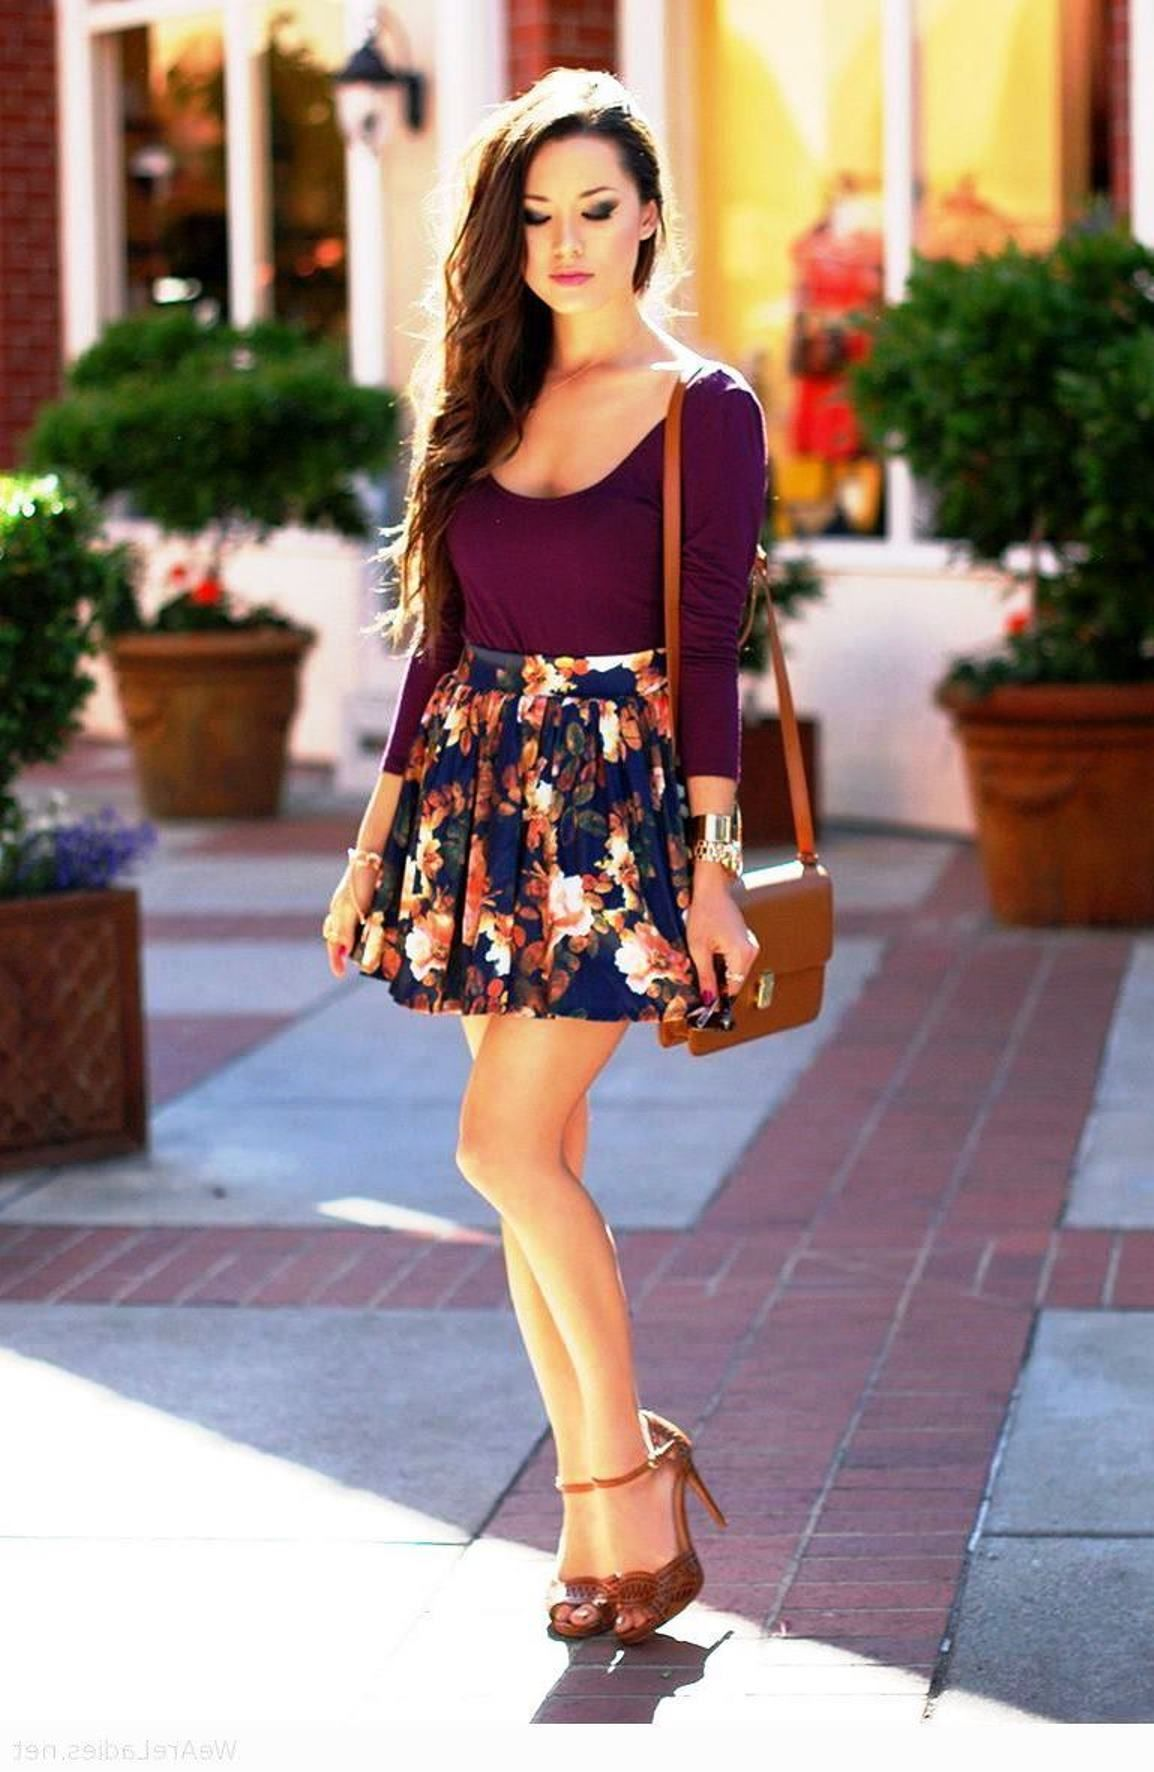 Tumblr Fashion Outfits Spring Images Galleries With A Bite